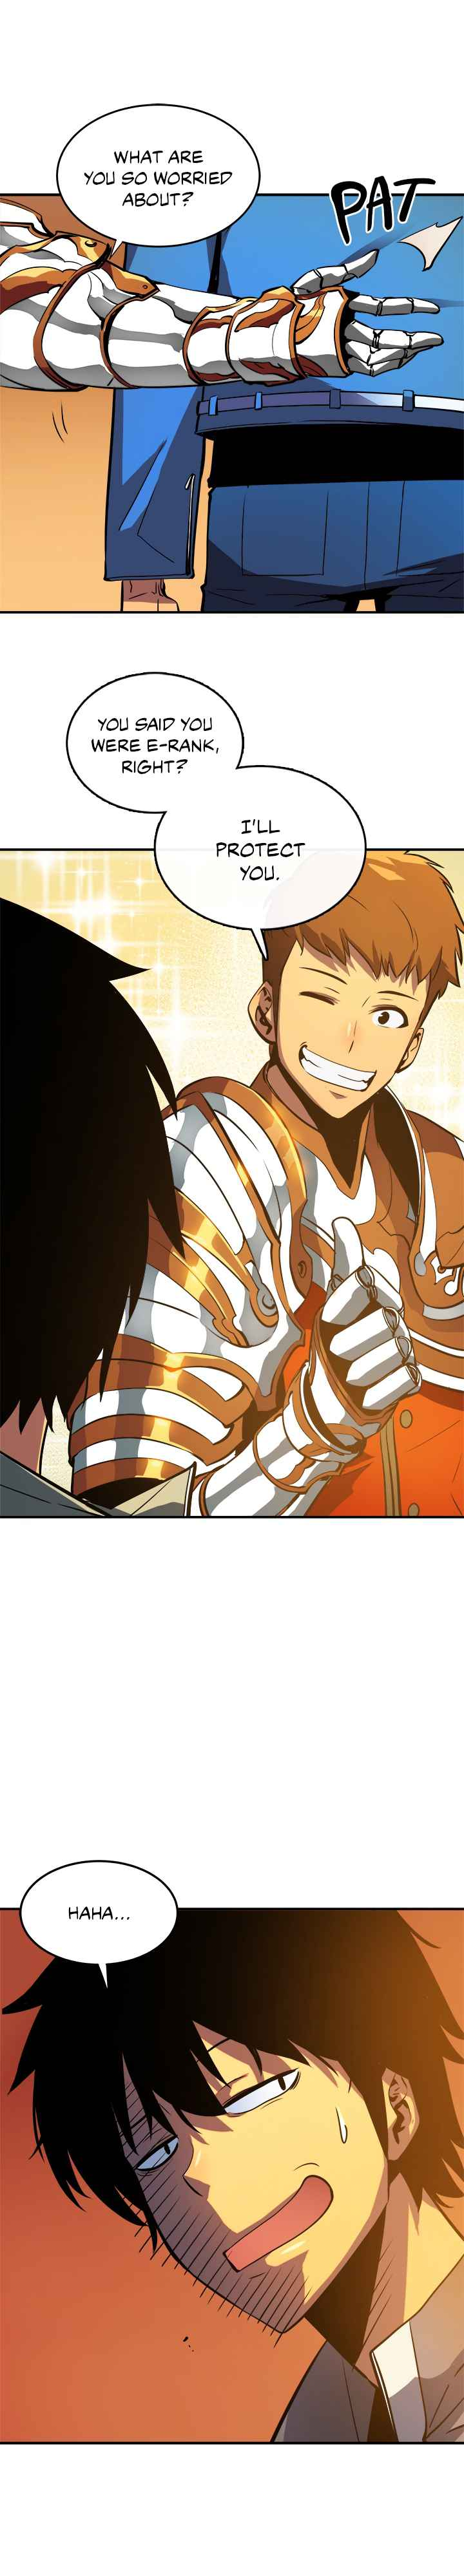 Solo Leveling Chapter 18 Page 30